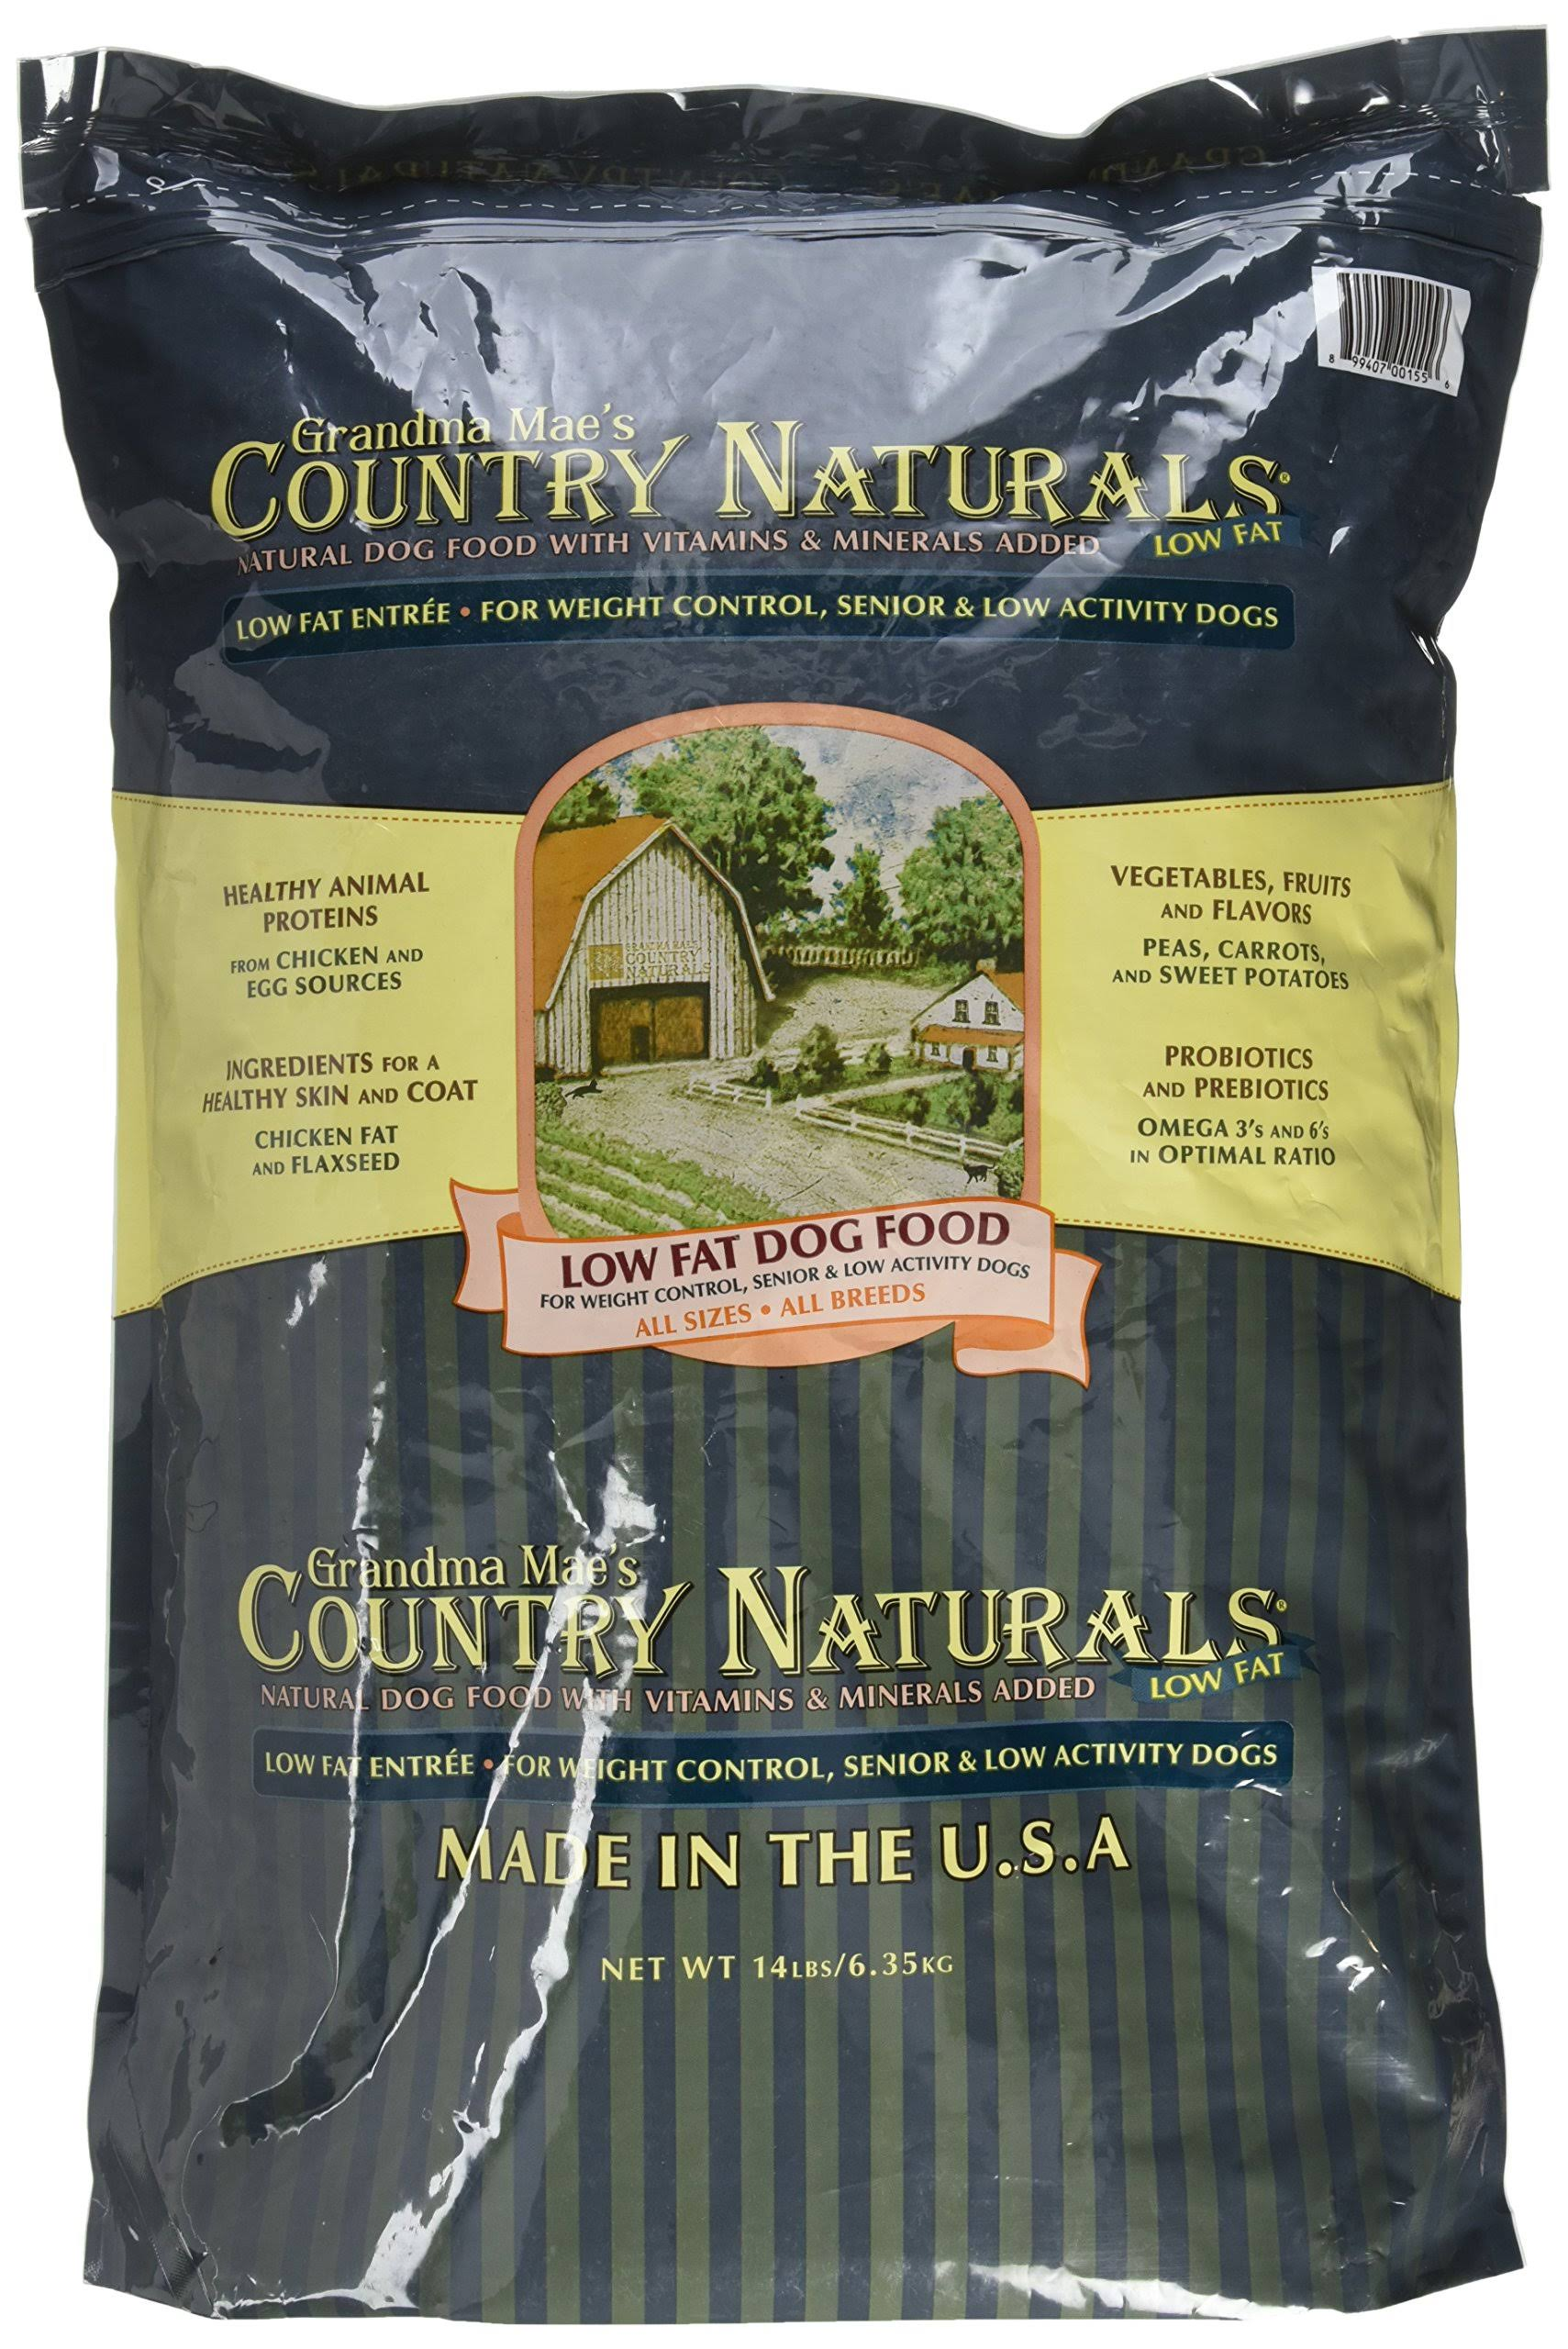 Country Naturals Grandma Mae's Low Fat Dog Food - 14lbs